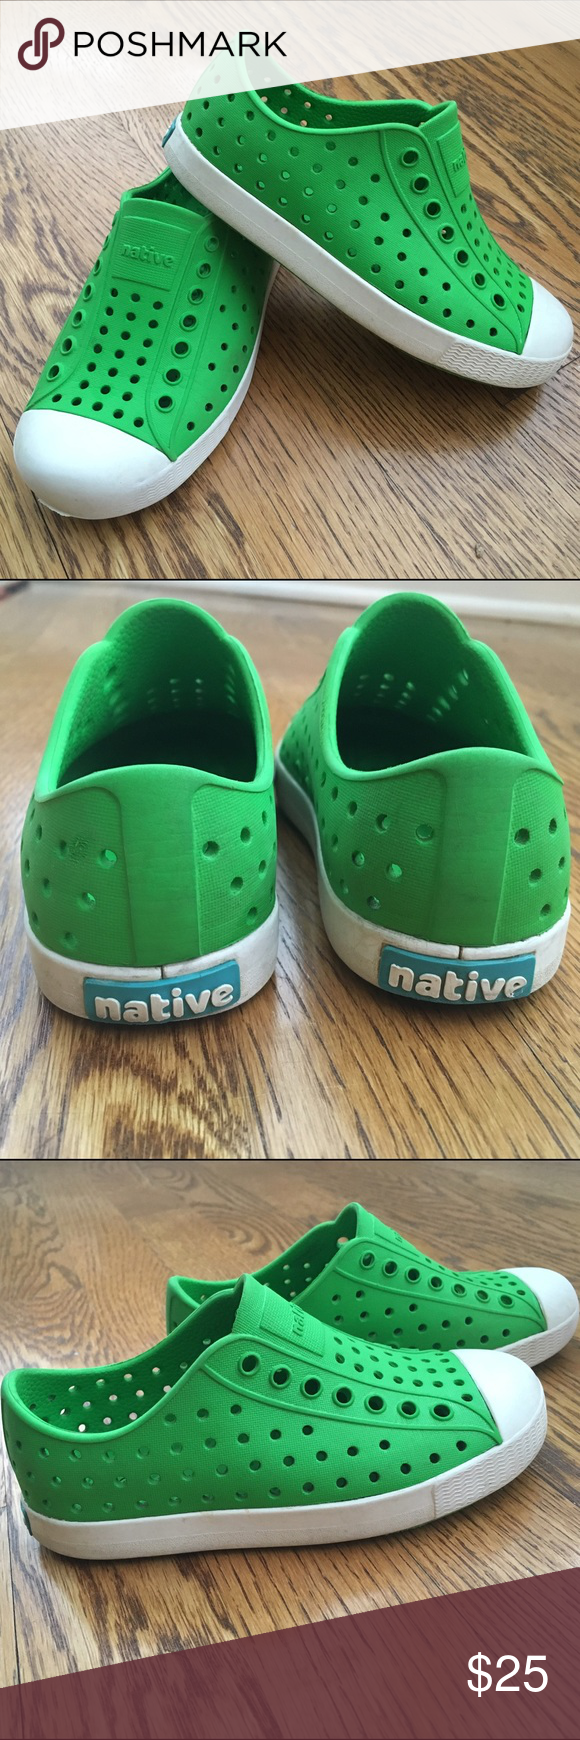 Kids' Native Slip-Ons   Green shoes